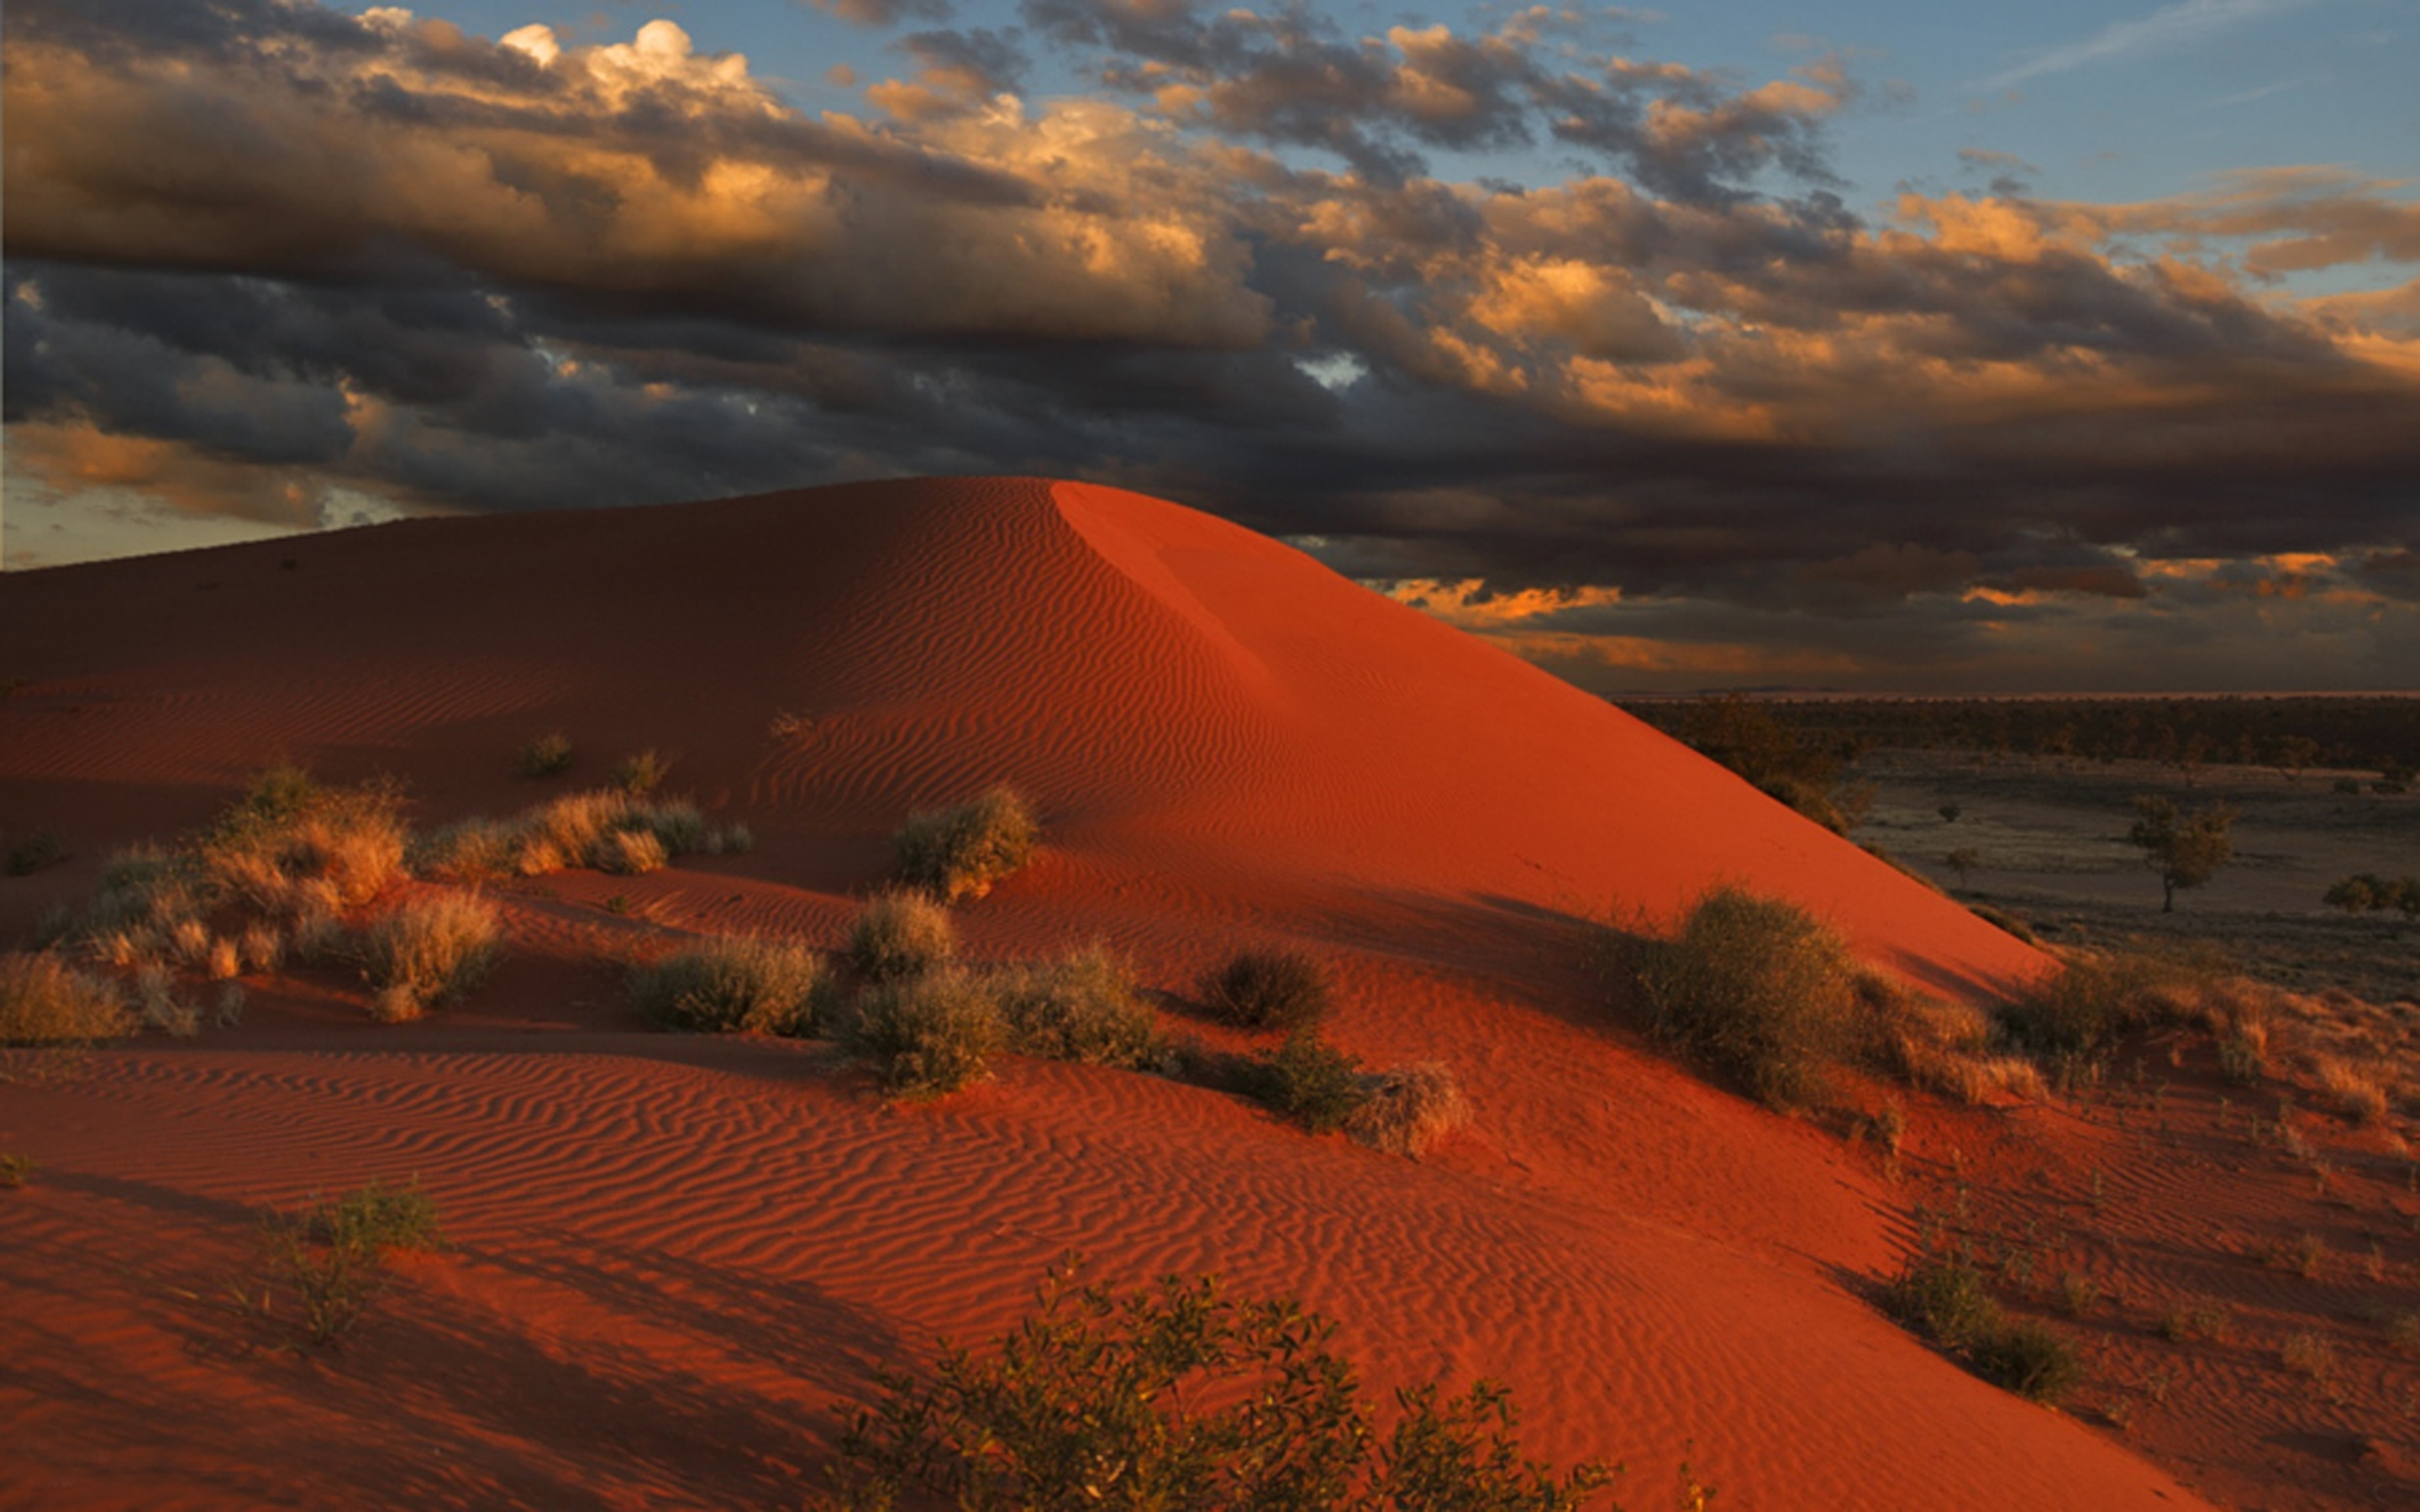 Desktop Wallpaper Fall Flowers Simpson Desert Large Area Of Dry Red Sandy Plain And